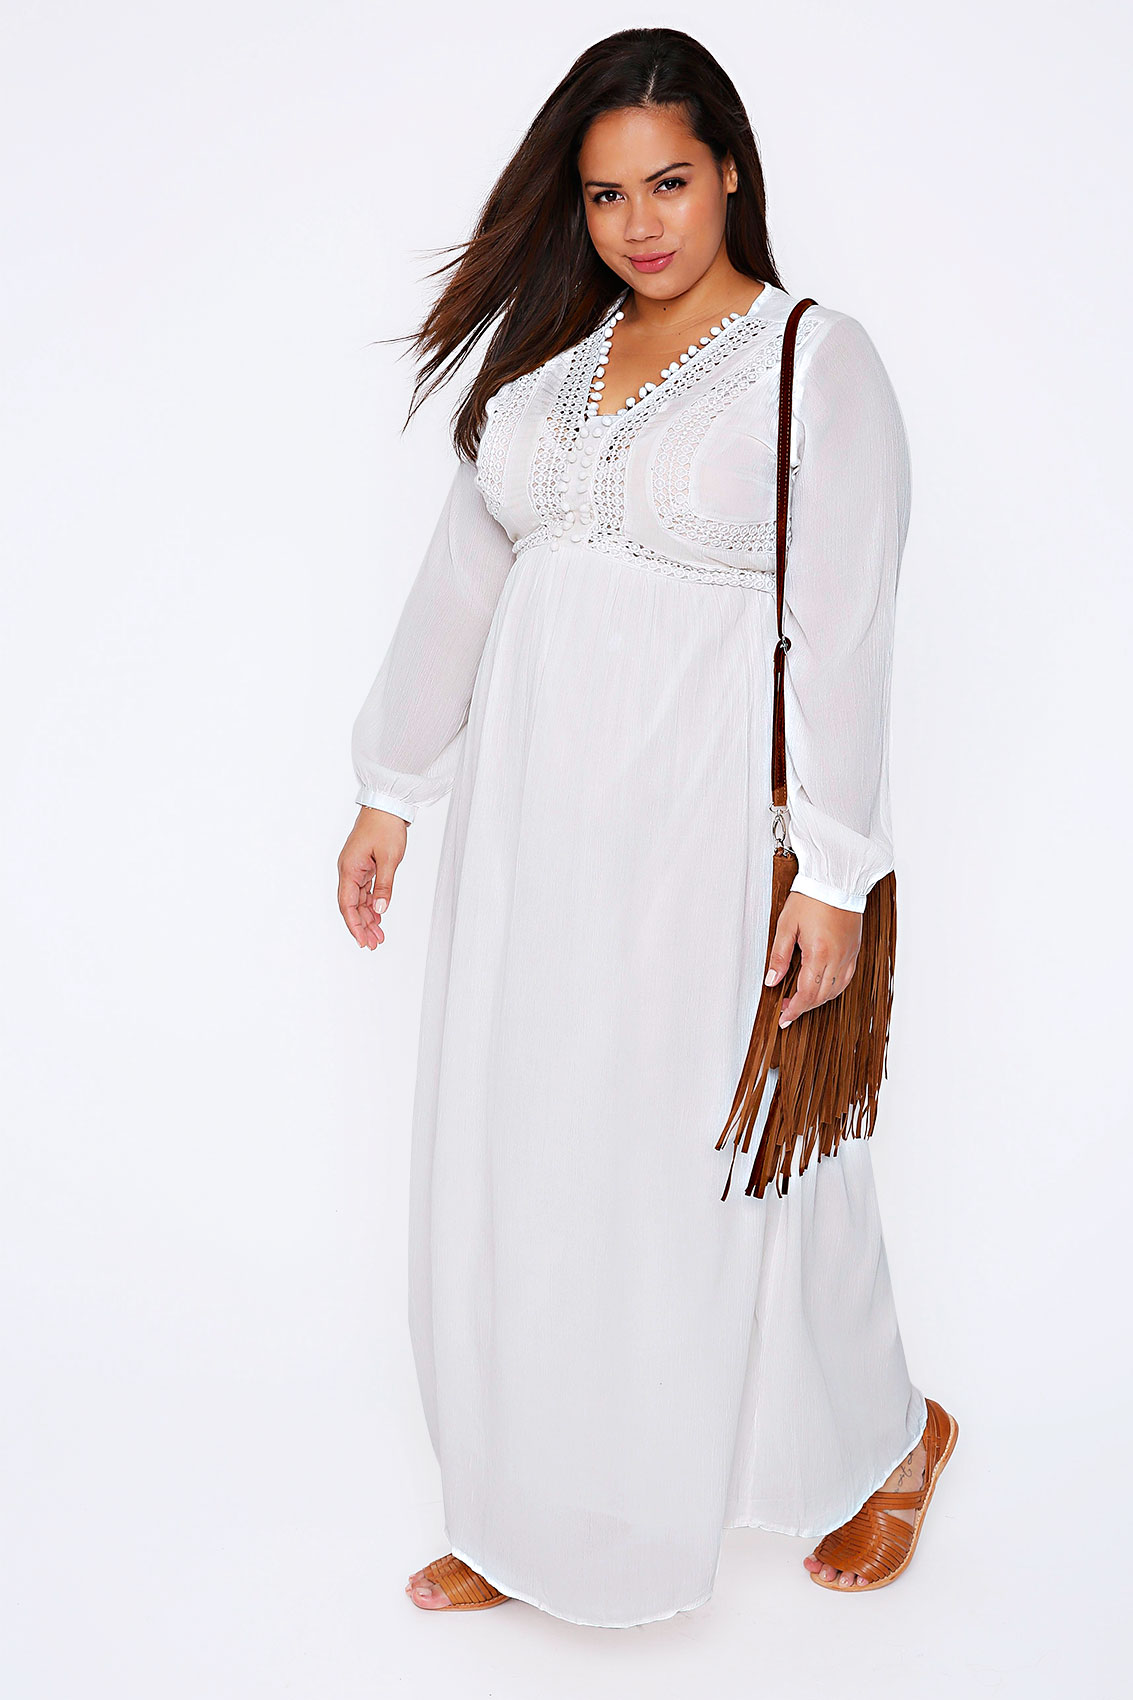 White Crochet Long Sleeve Maxi Dress With Pom Pom Detail Plus Size 16 To 32